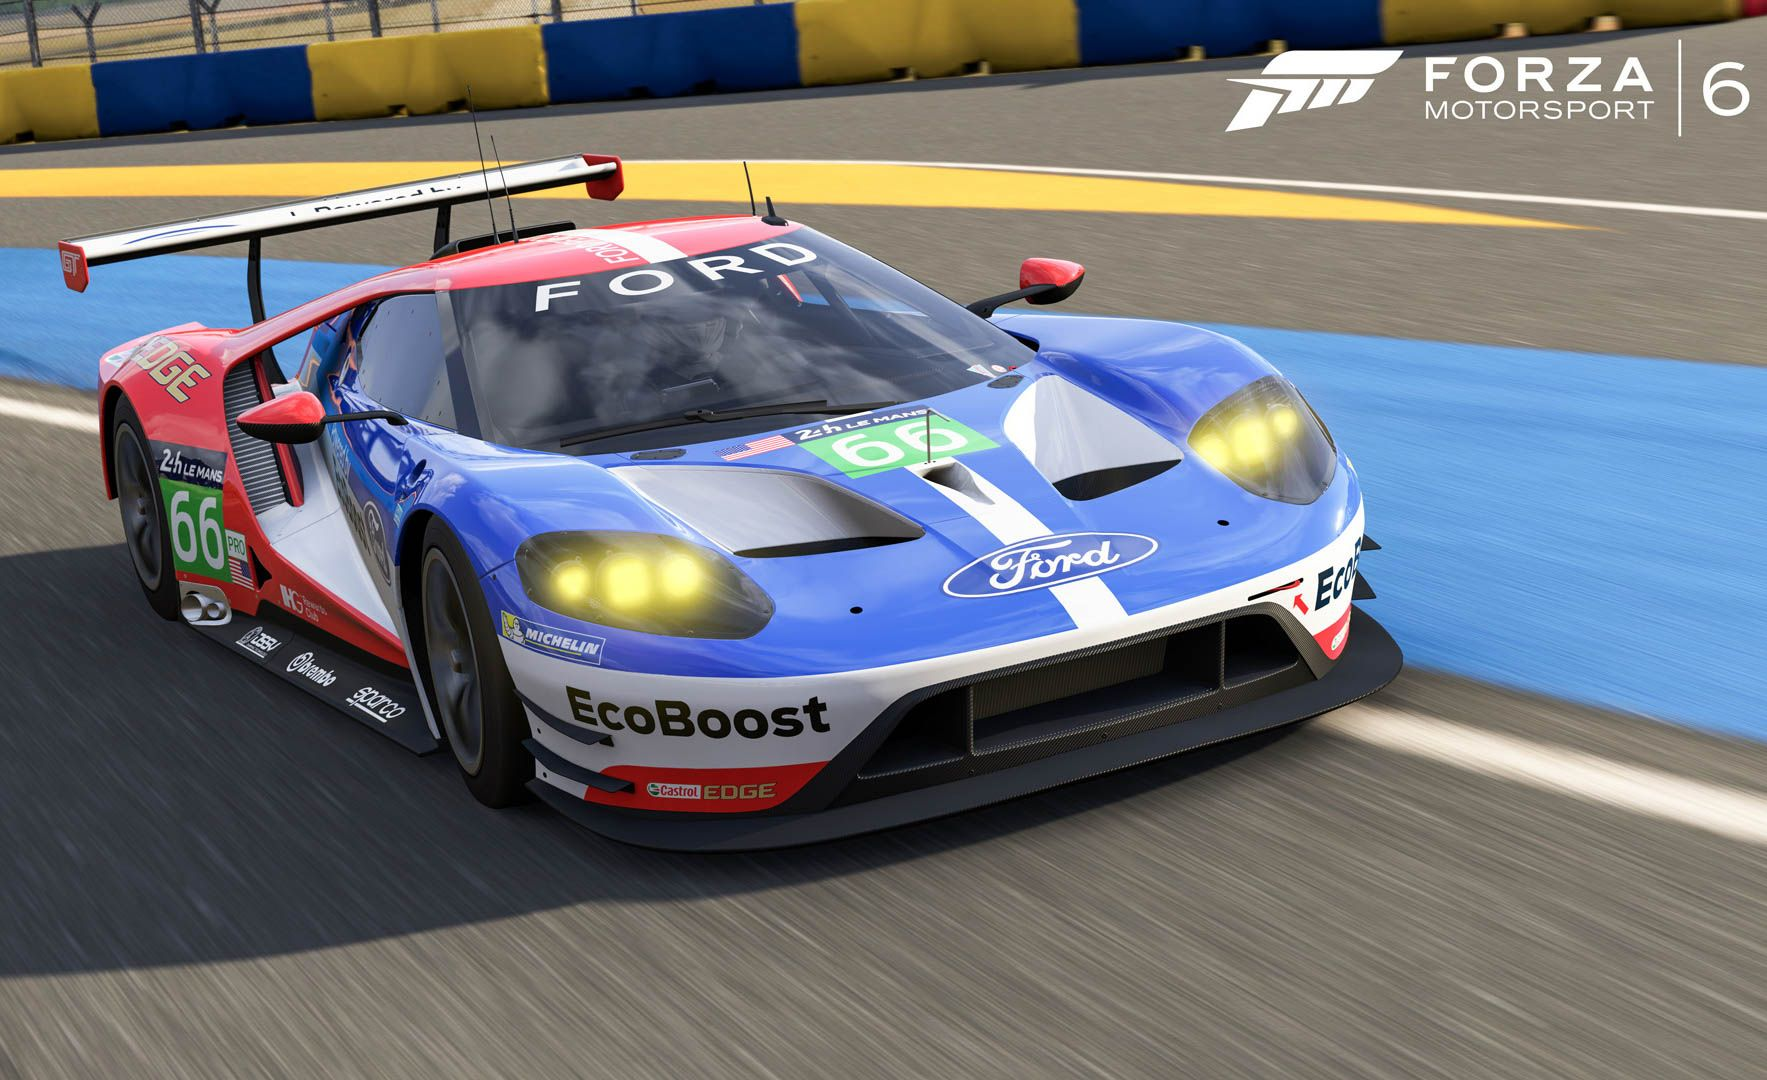 Forza Adds Ford Gt Race Car Just In Time For Le Mans Race